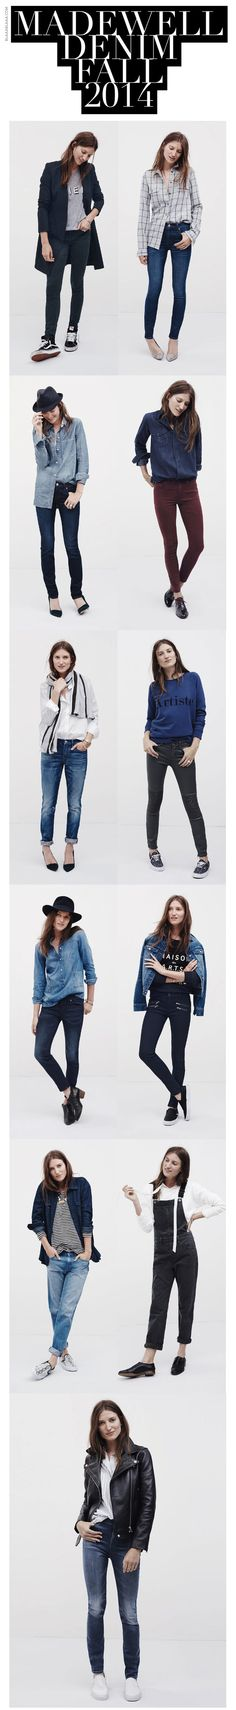 Madewell Denim Fall 2014